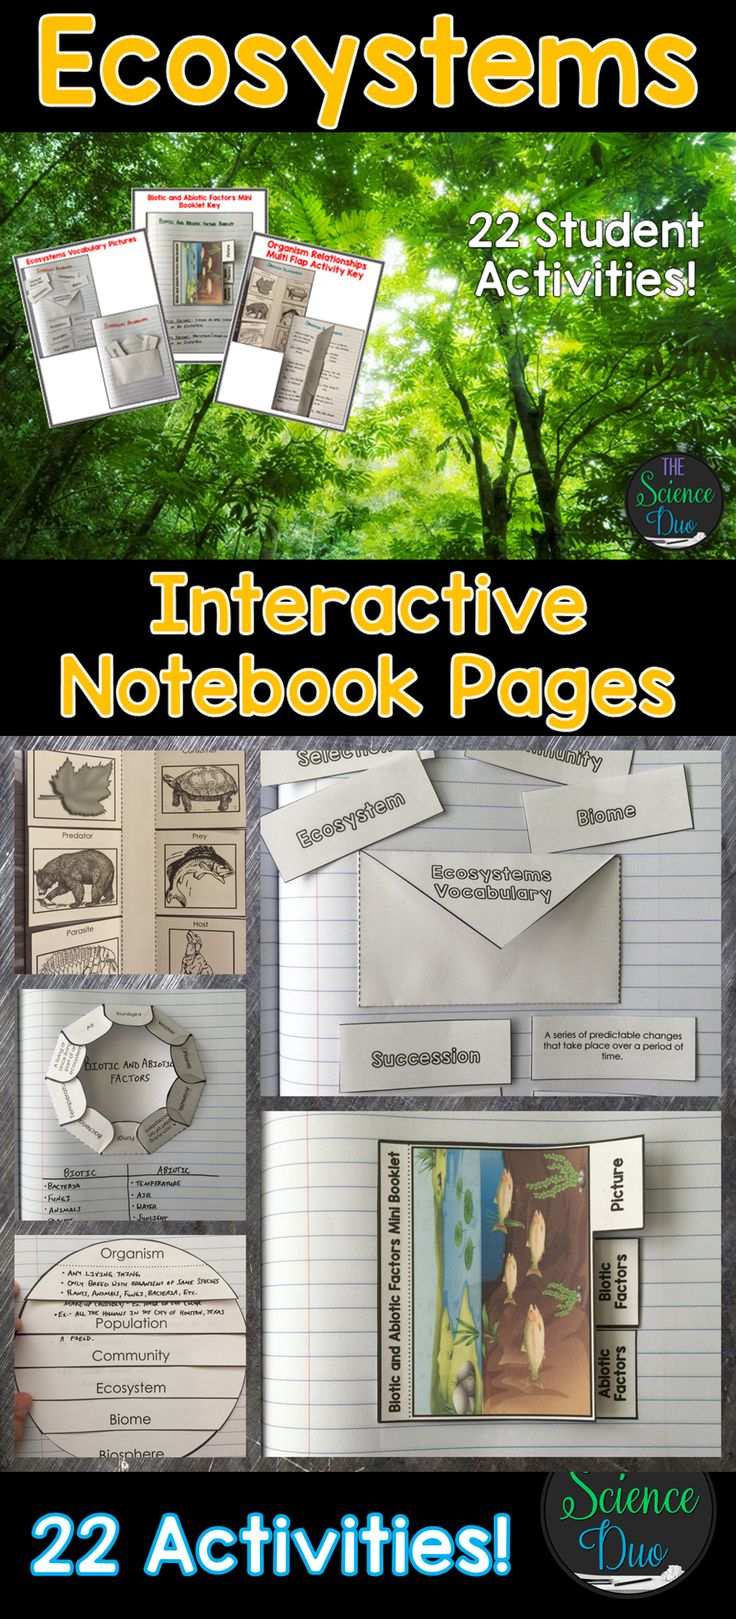 Bring engaging and interactive activities into your classroom with these science notebook pages. This resource contains 22 different interactive notebook activities covering energy flow in ecosystems, adaptations, organism relationships, and much more!